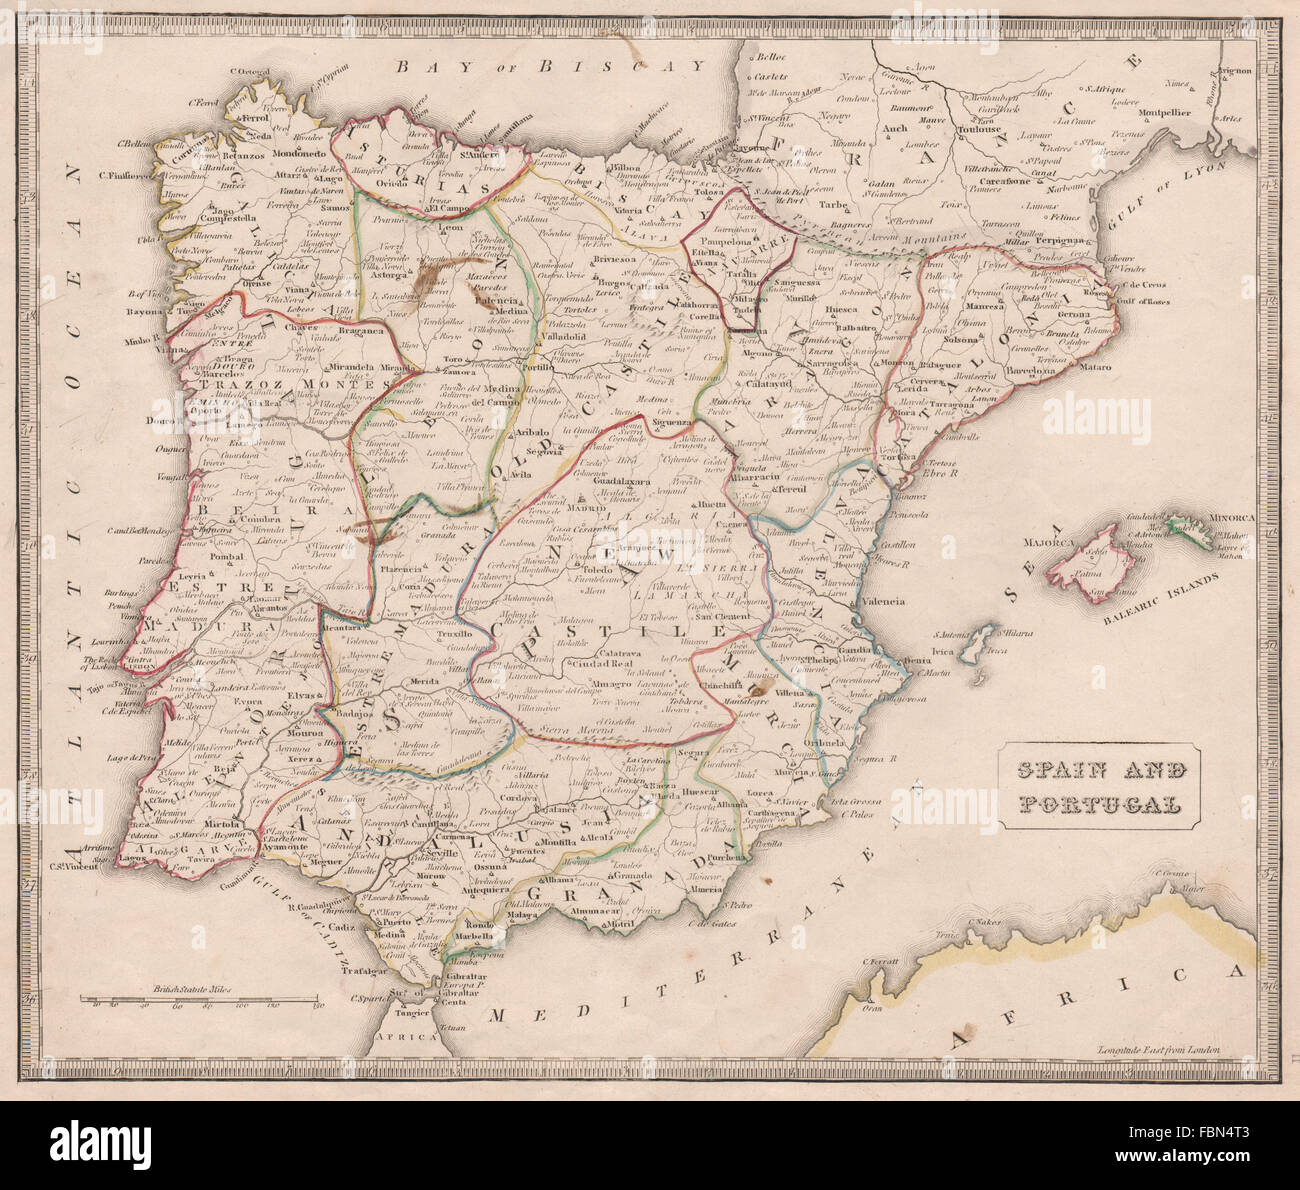 SPAIN & PORTUGAL. Provinces rivers key towns. Original colour Stock on physical characteristics of spain, symbols of spain, major lakes of spain, countries and capitals of spain, key map of mali, strawberry feild in spain, key map of yemen, regions of spain, key map of united arab emirates, key geography, key map of greece, map from spain, key map of maldives, physical features of spain, key map of sudan, key map europe, key map texas, thematic maps of spain, zip code of spain, key map of nauru,